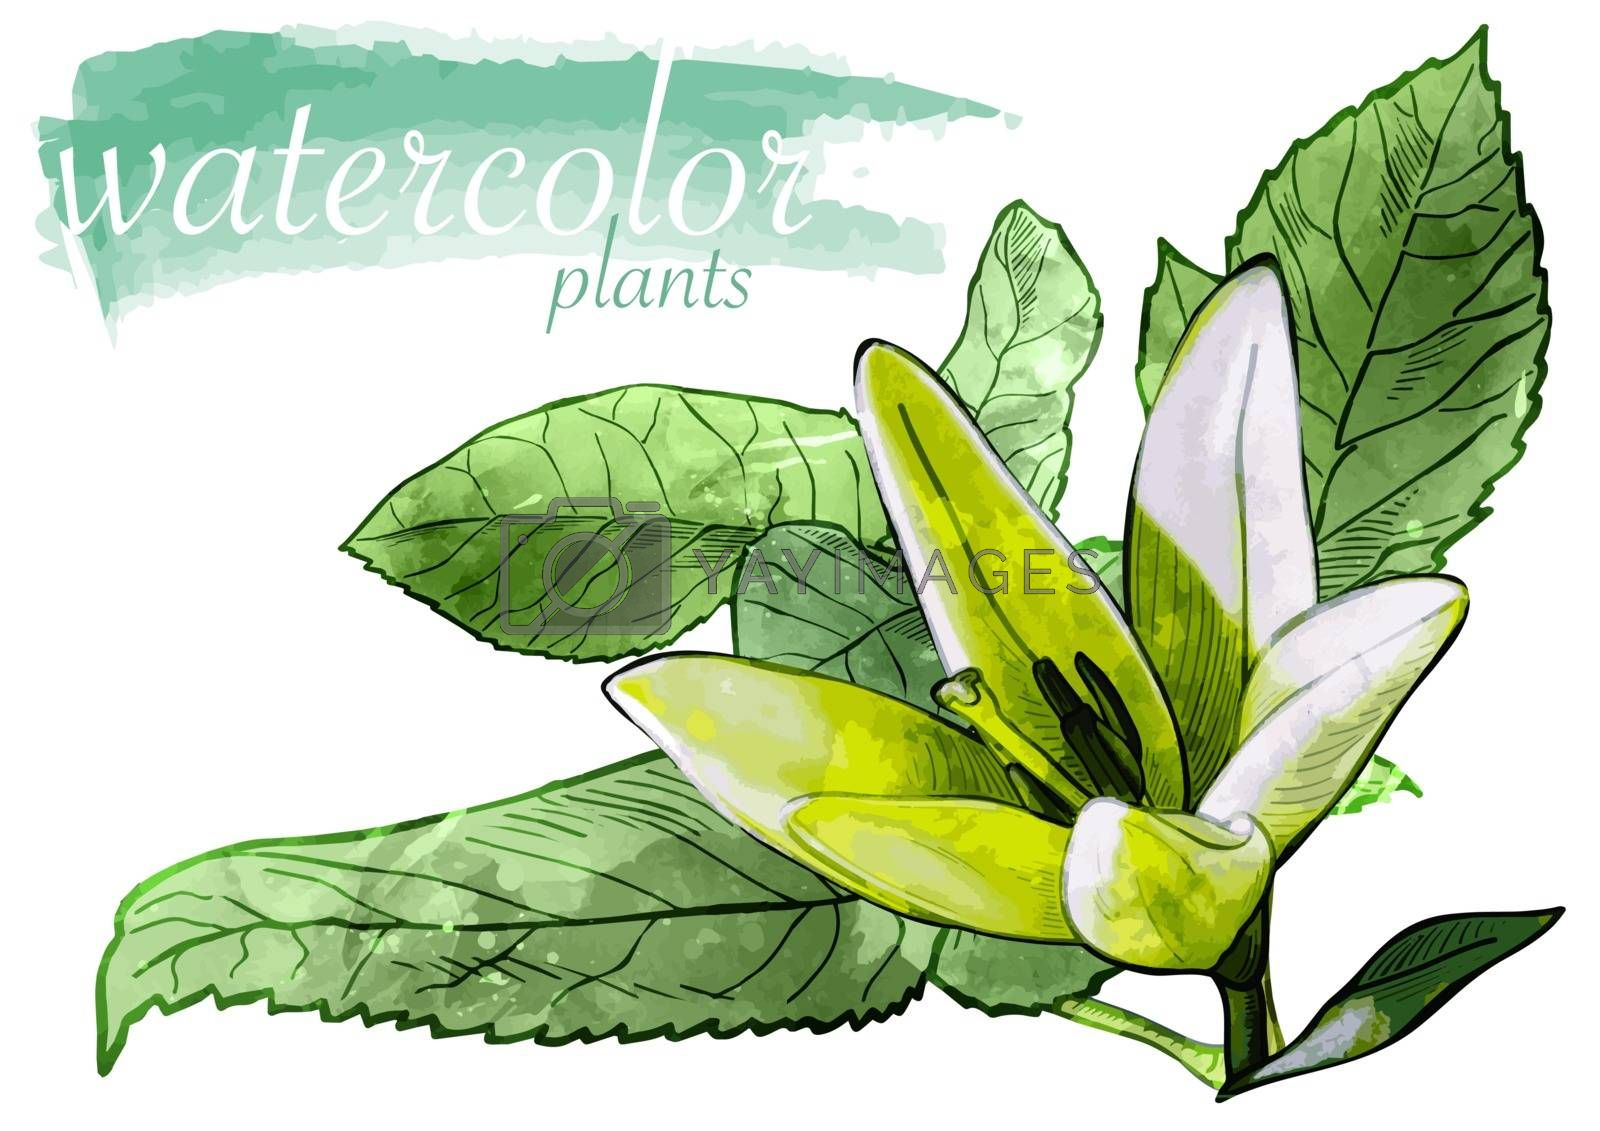 Green Watercolor Flower with Leafs by illustratorCZ